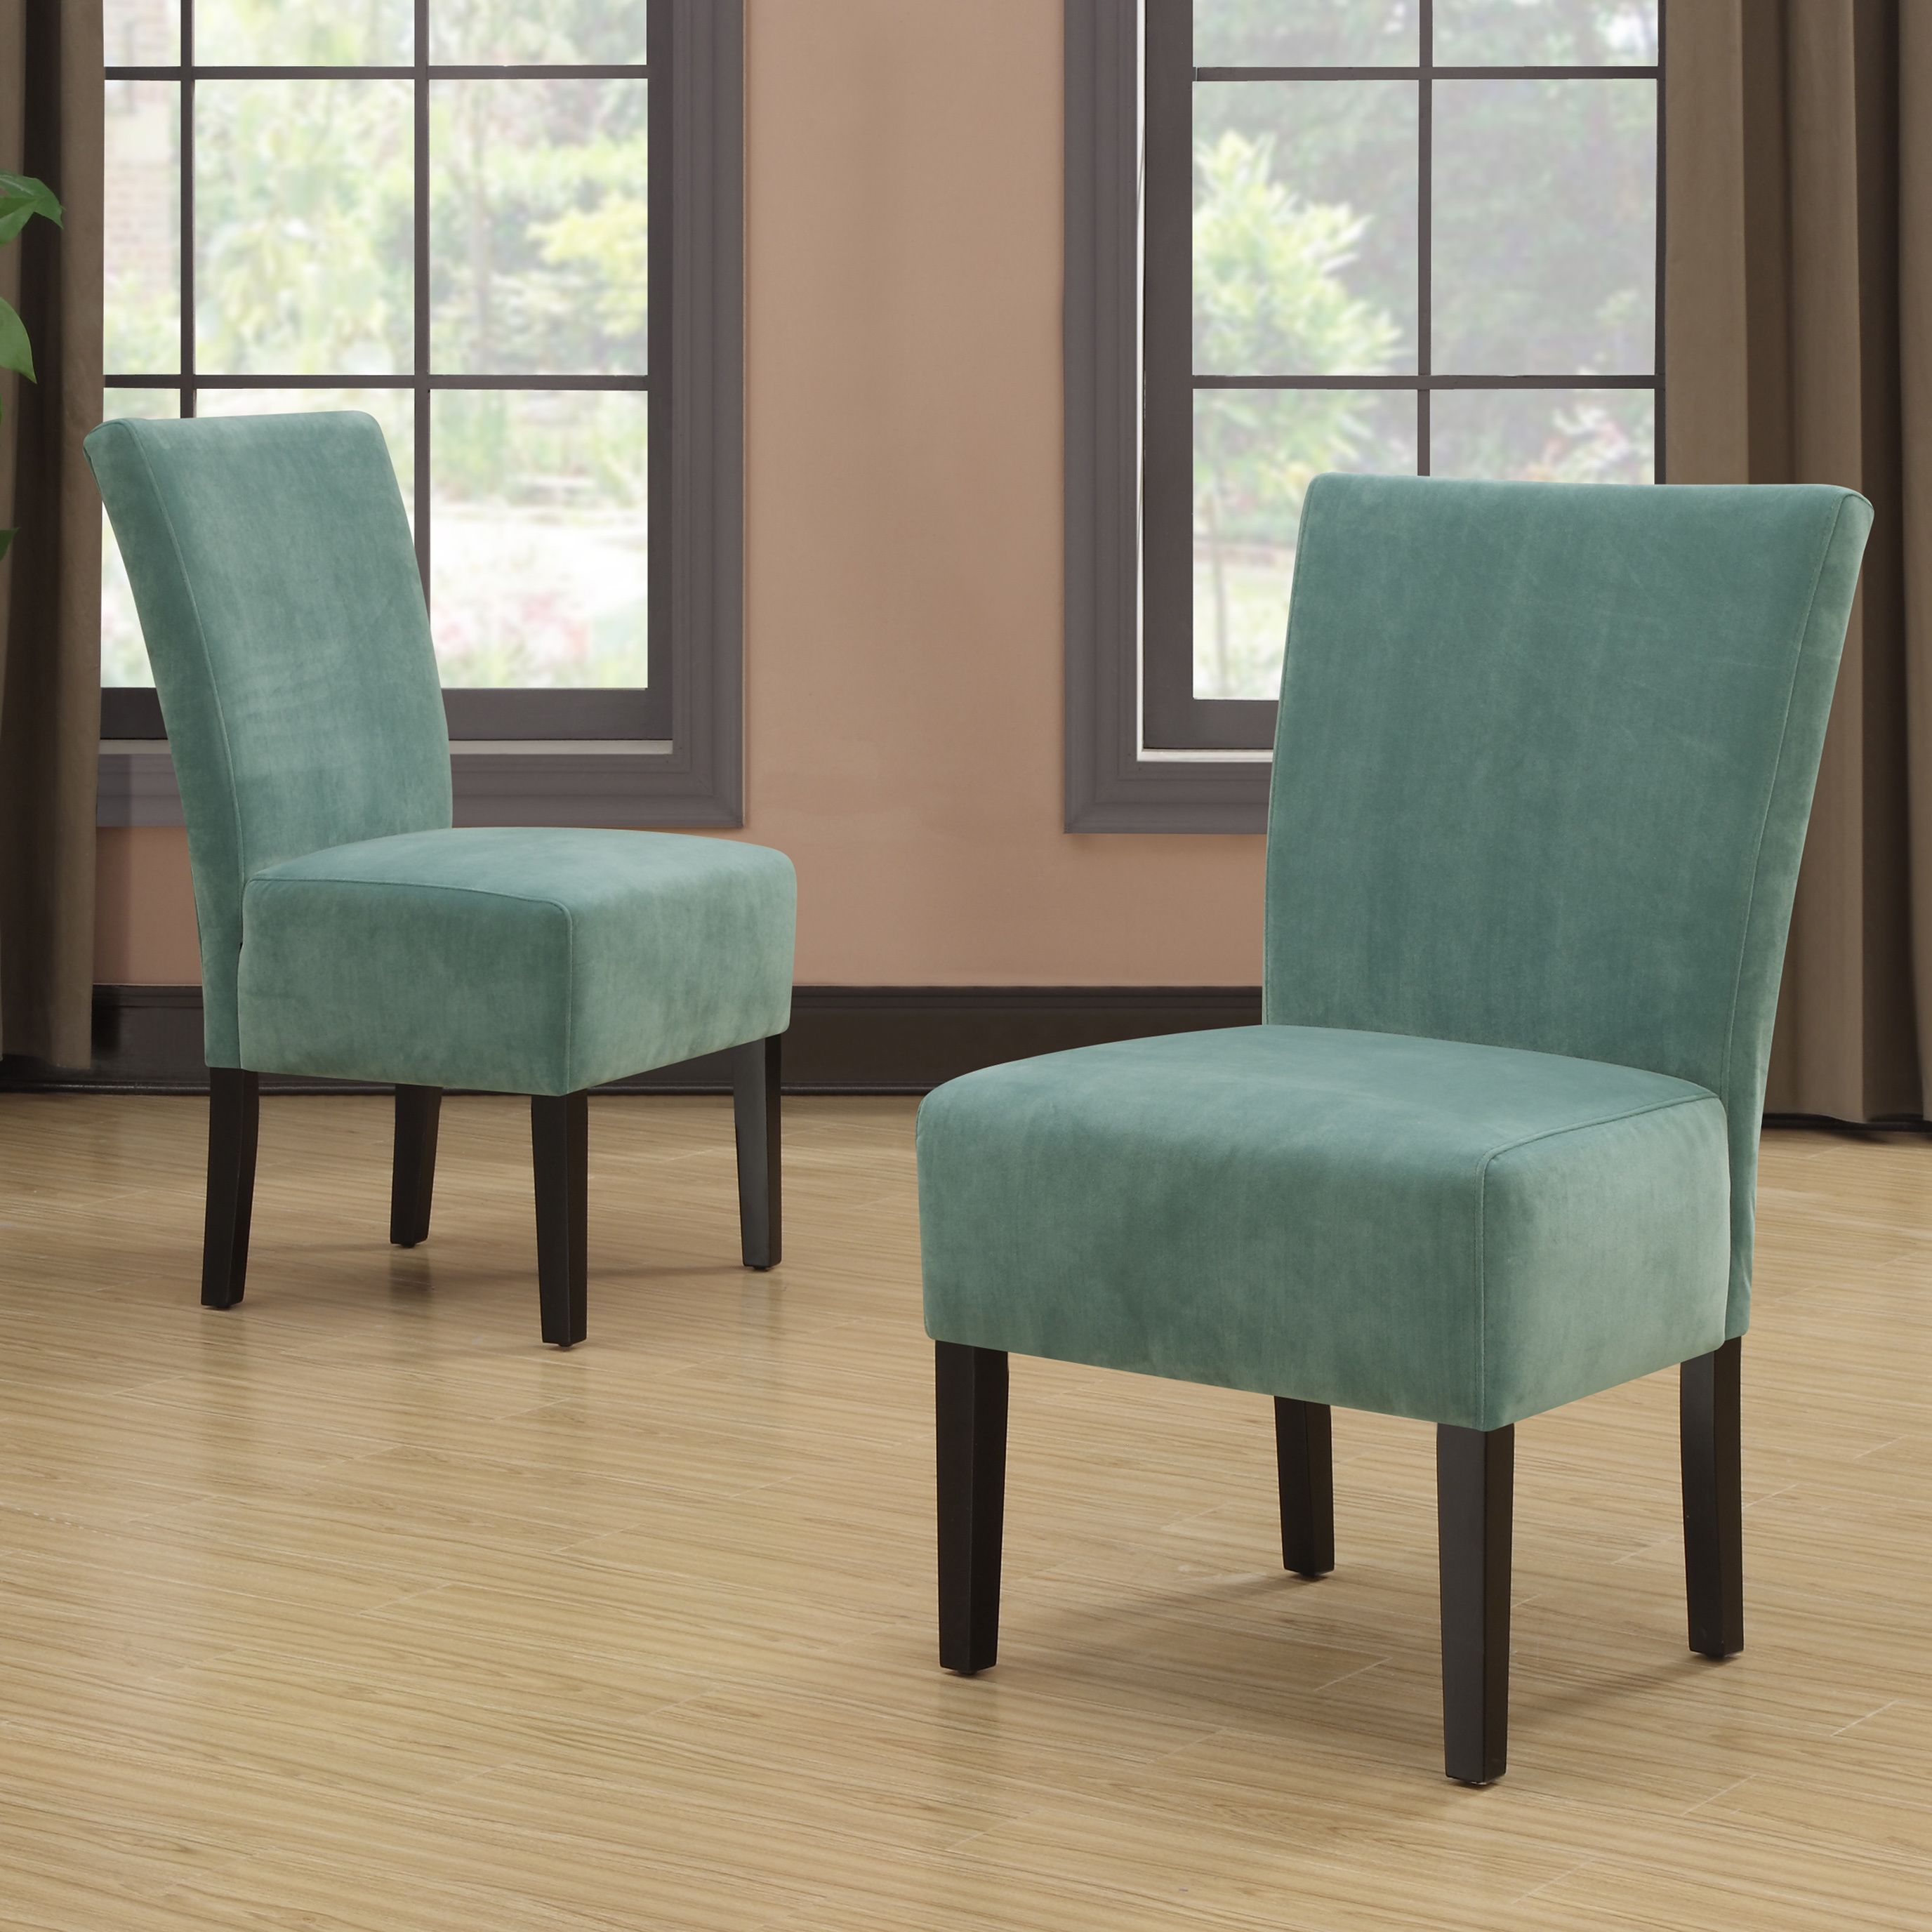 The Portfolio Home Furnishings Duet Emma Armless Accent Chair Features  Upholstery In A Beautiful Turquoise Blue